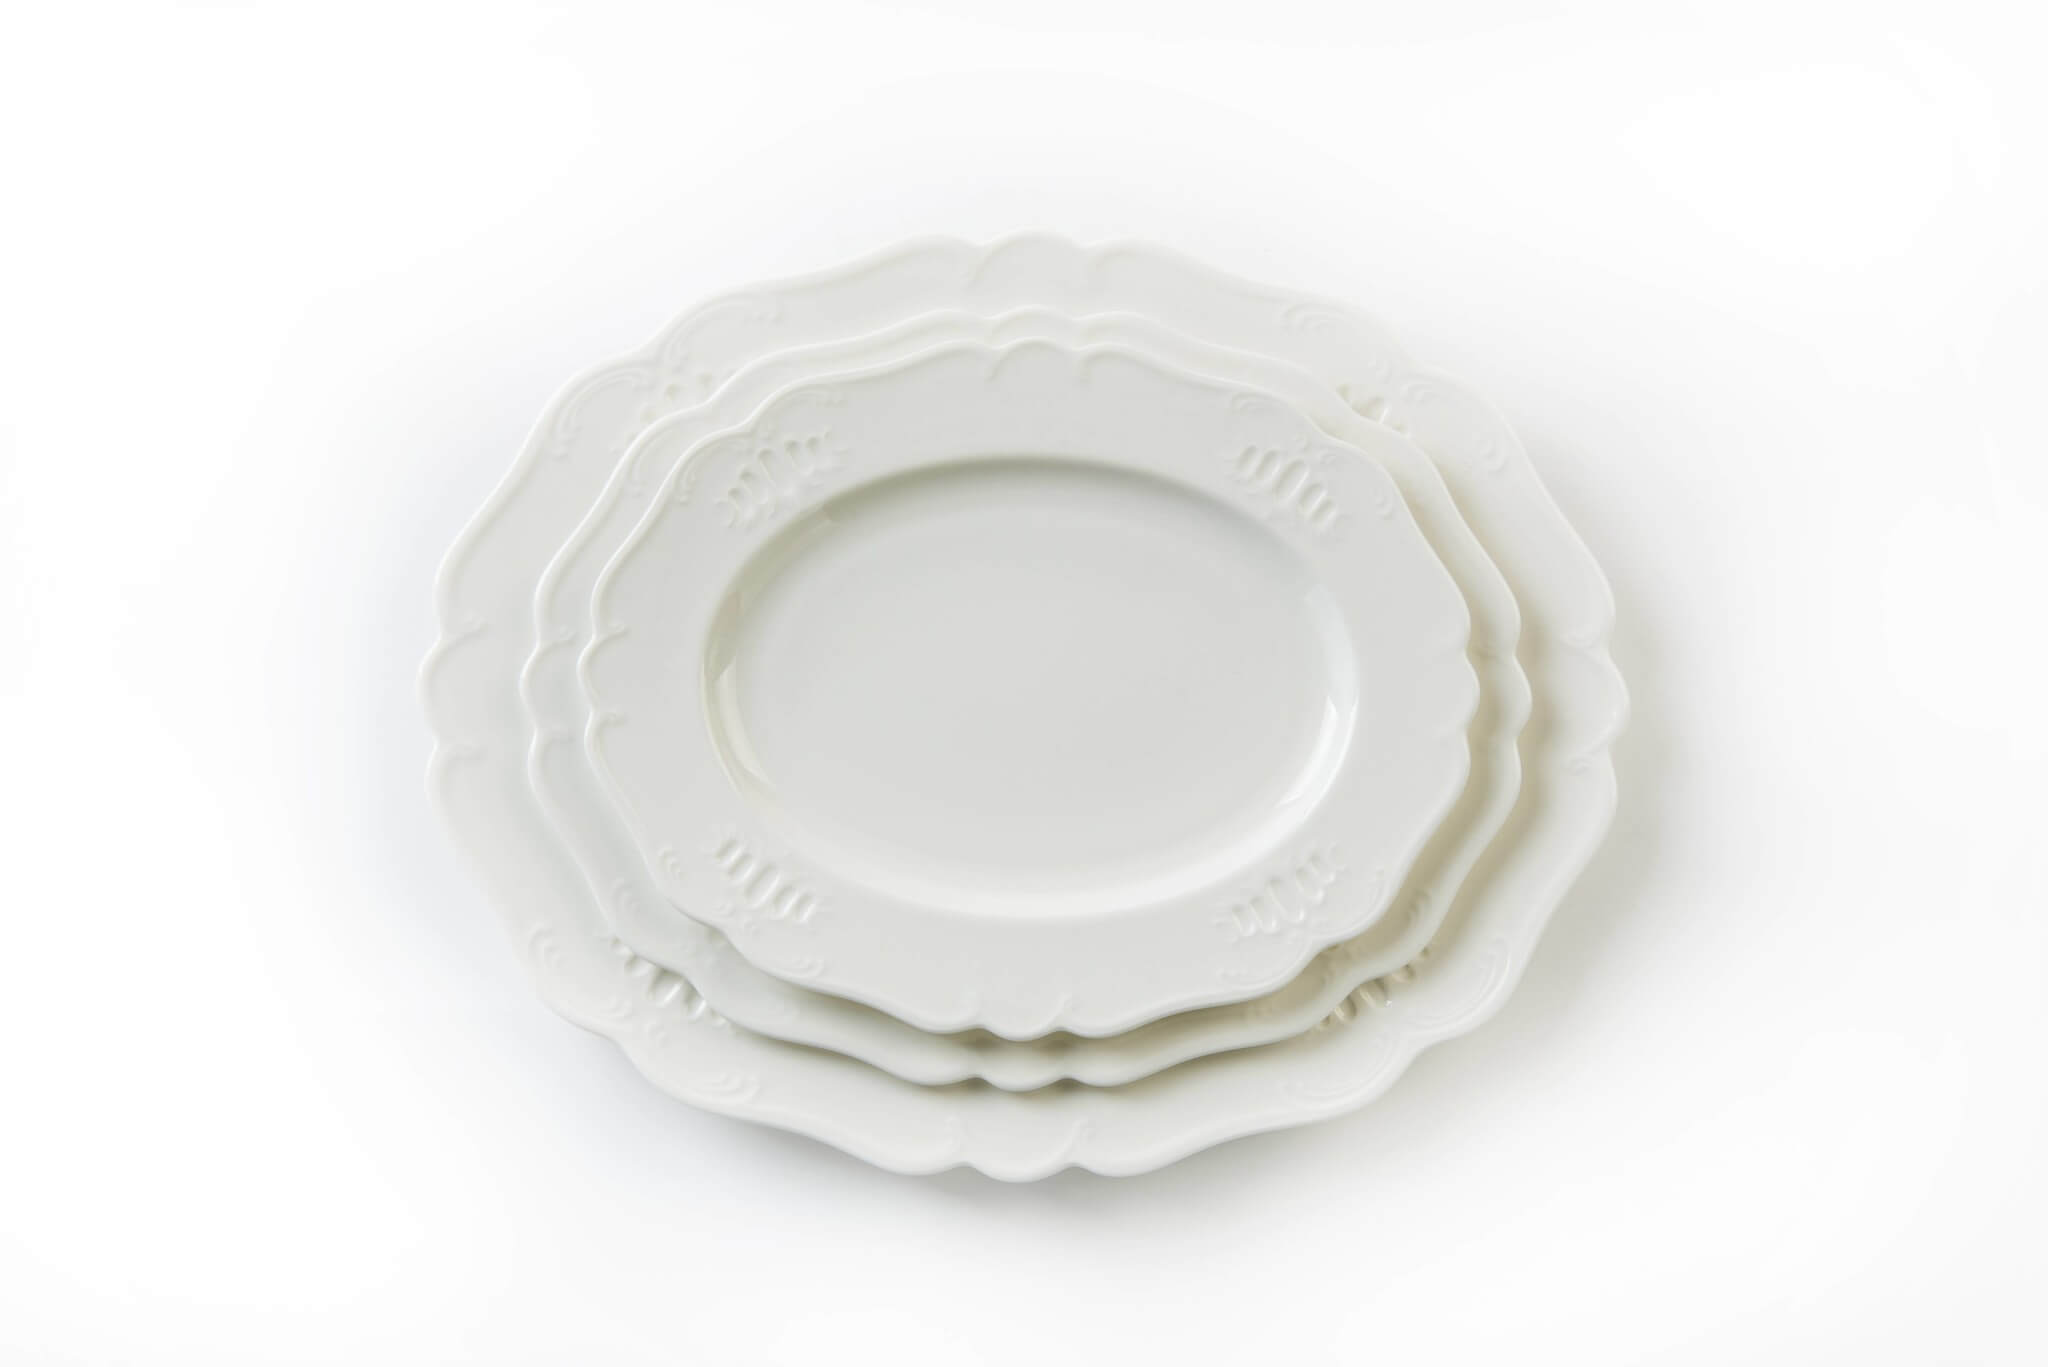 embossed white bone china dinnerware white bone china tea set white bone china saucers ...  sc 1 st  What is Bone China? & Embossed white bone china dinnerware - Bone China Products Supplier